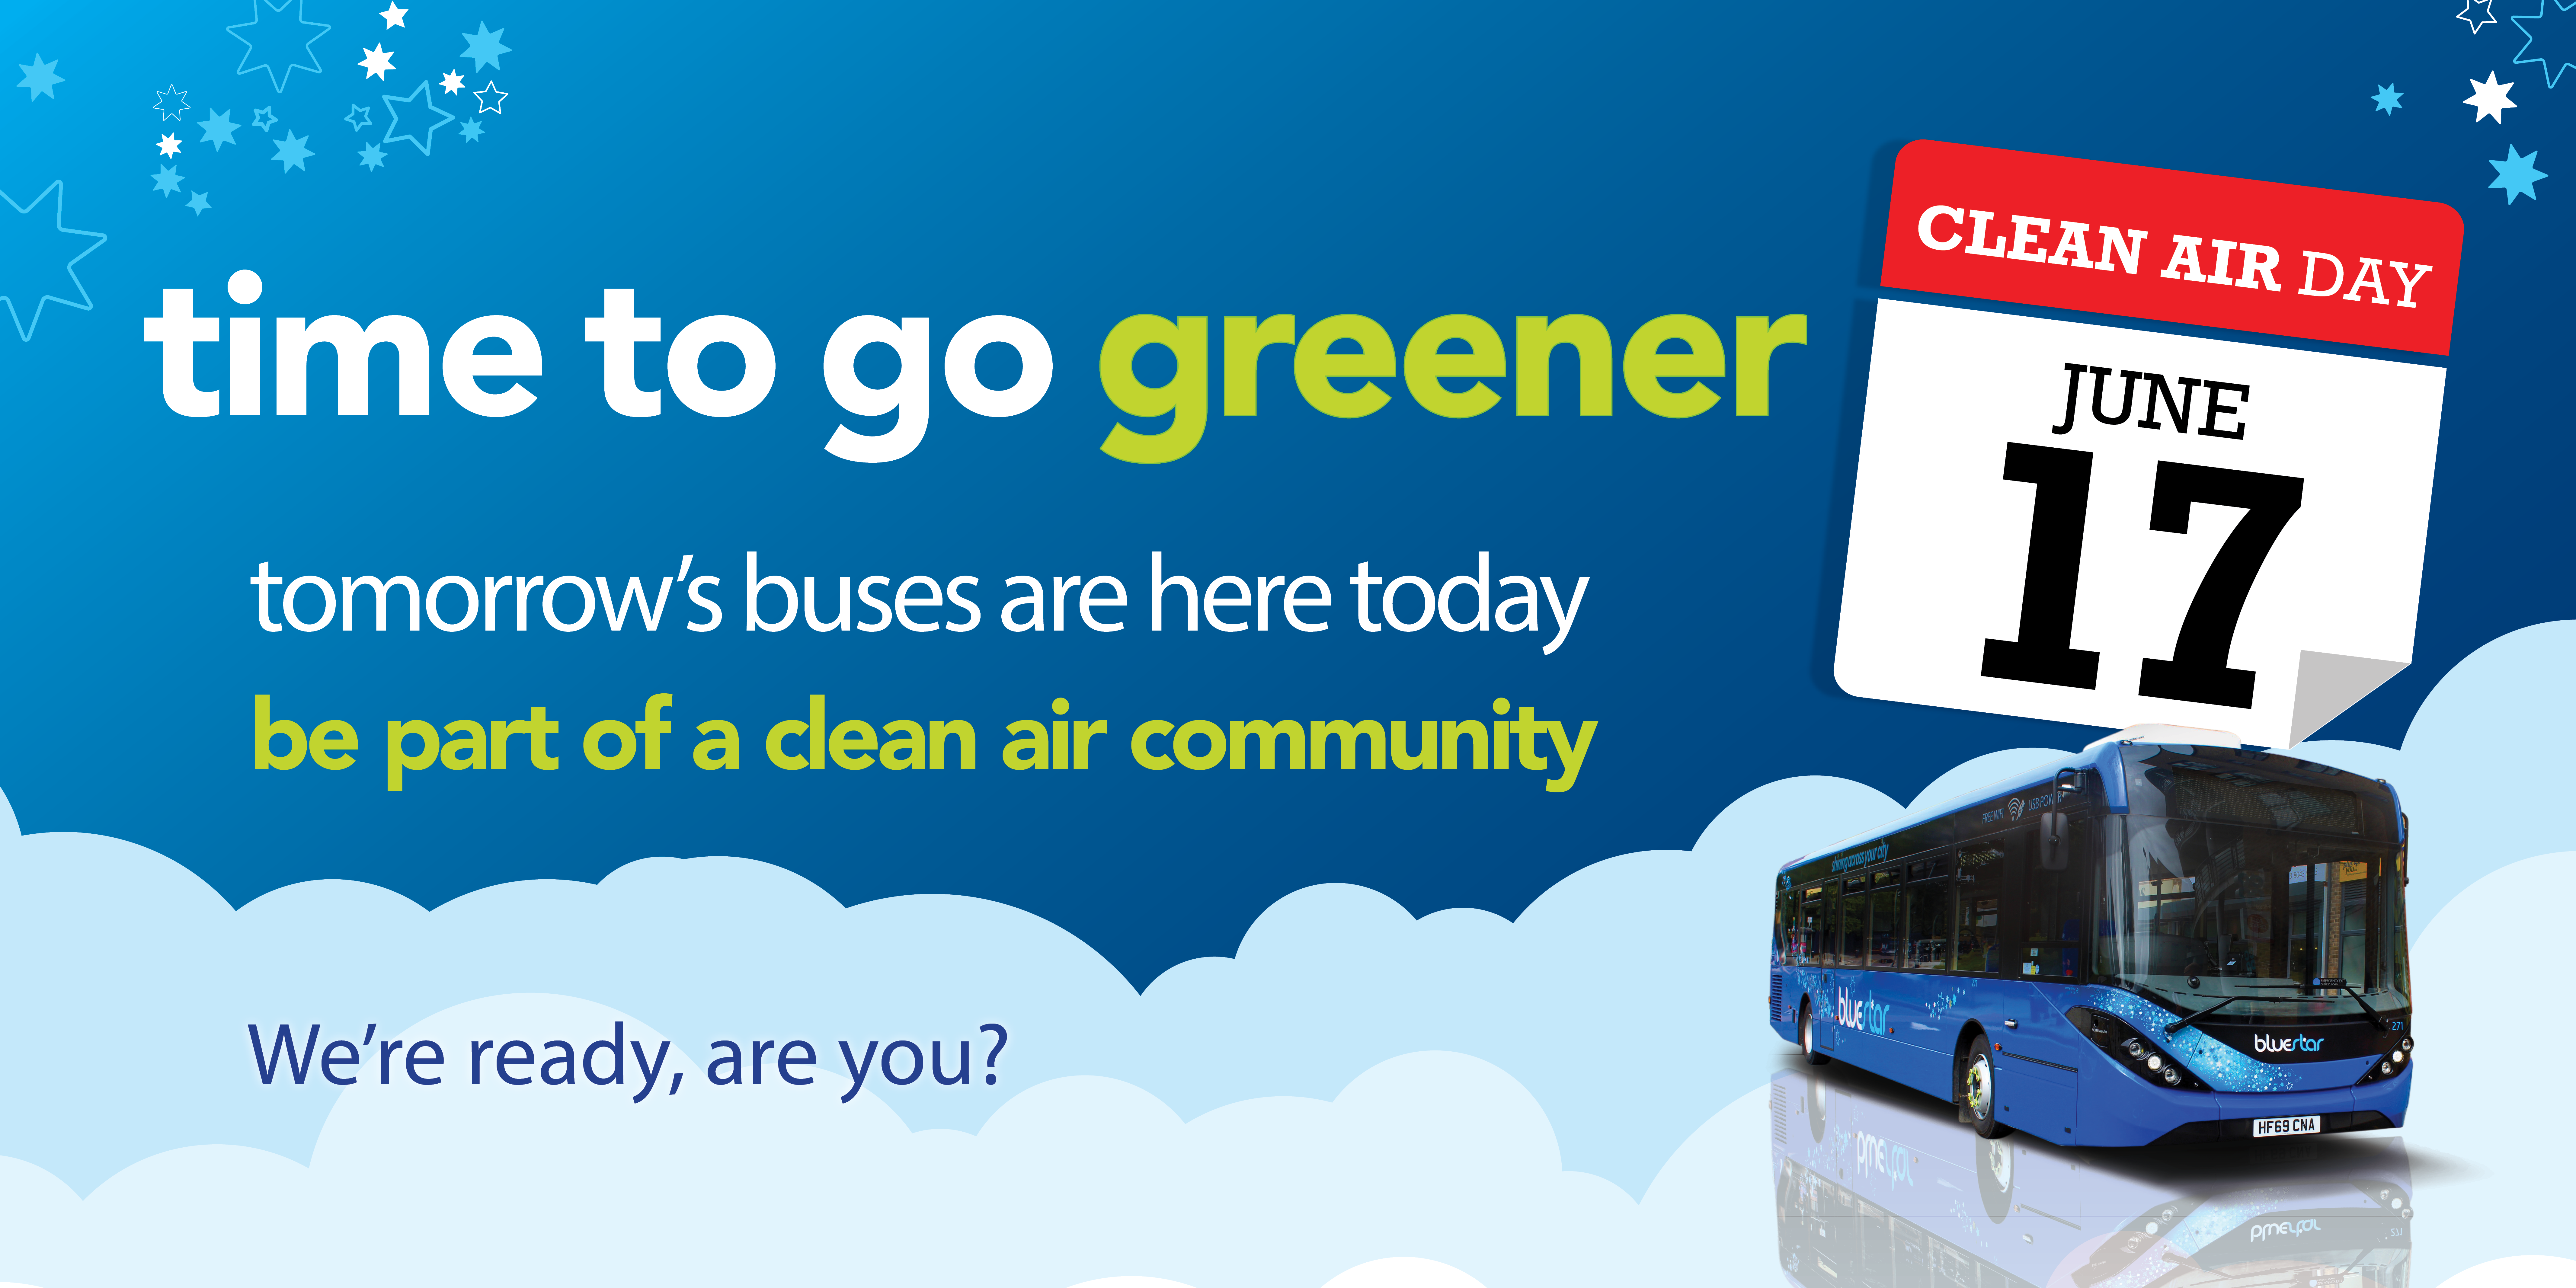 A promotional image for Clean Air Day